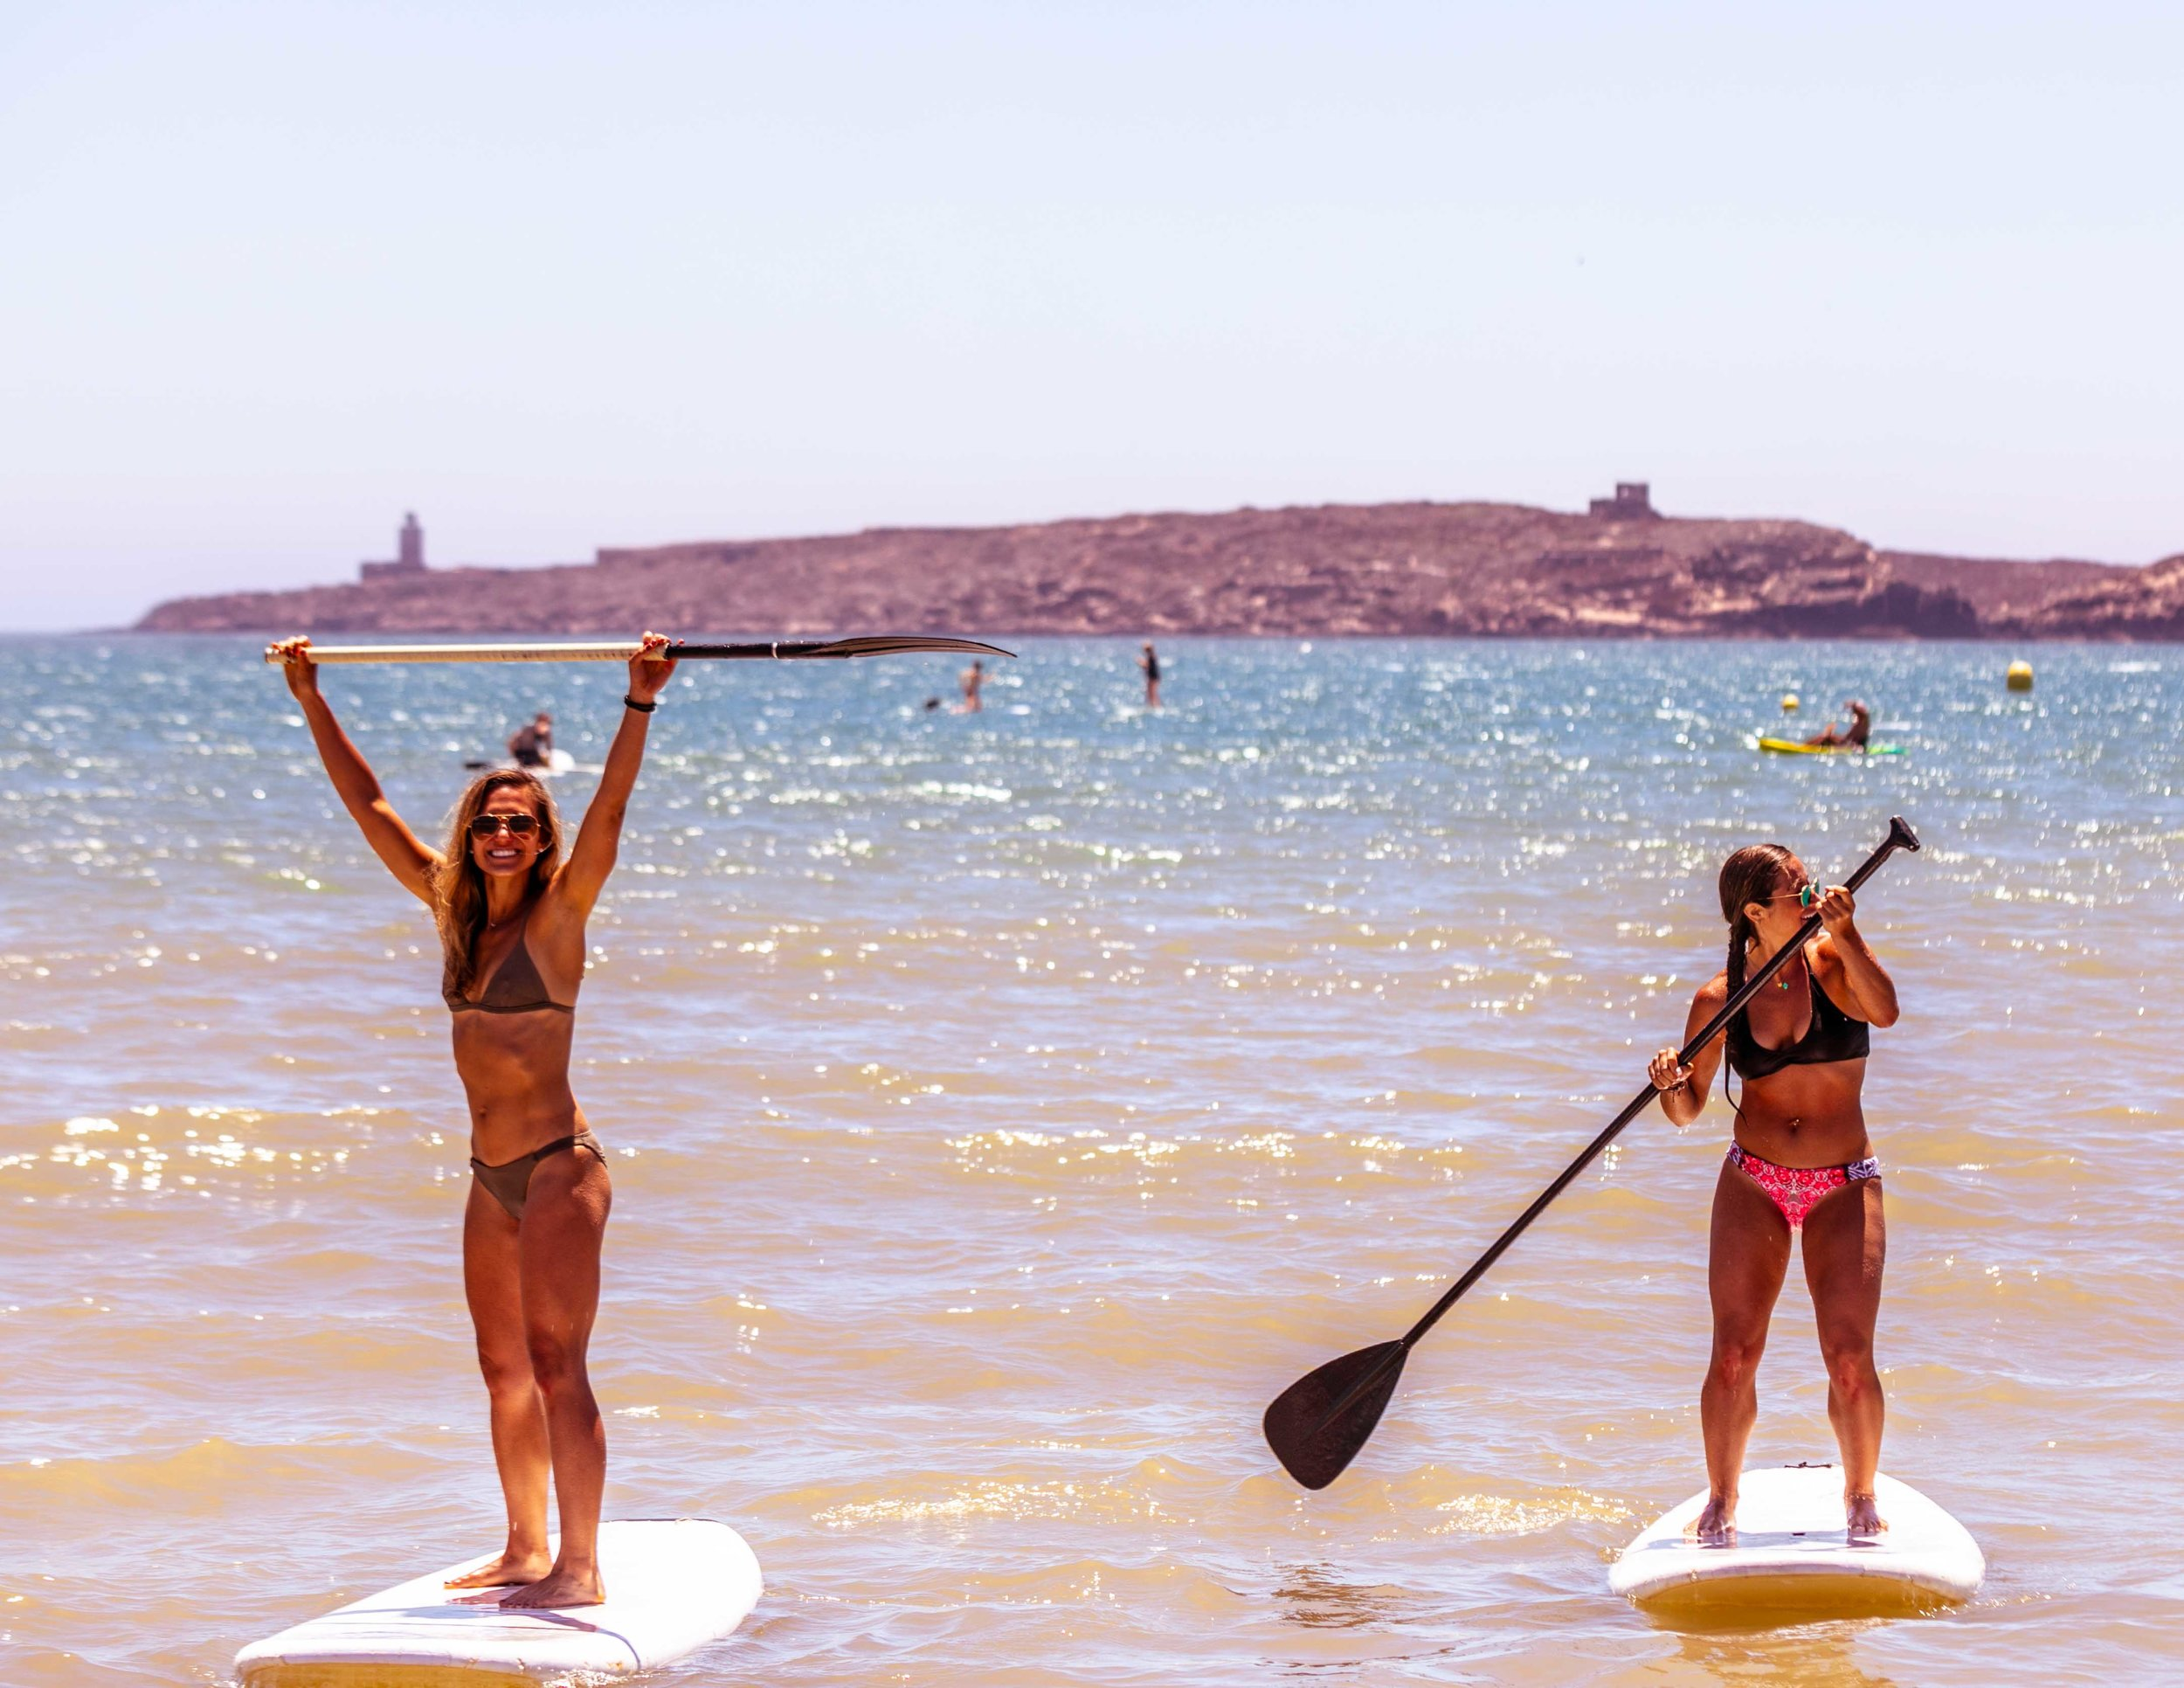 Stand Up Paddle boarding in Essaouira